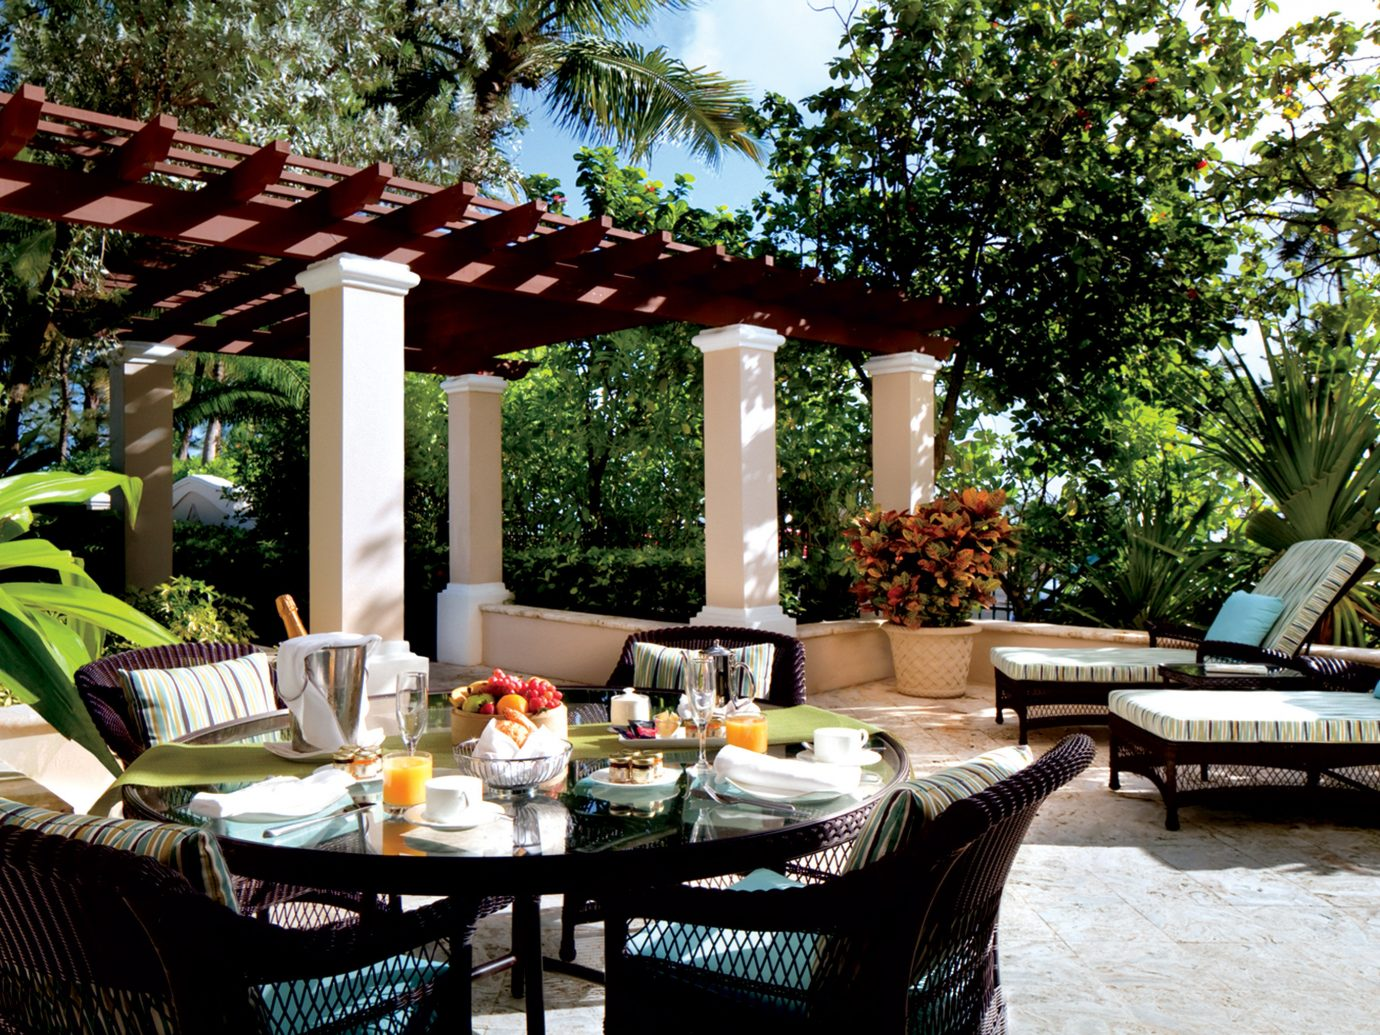 Dining Drink Eat Jetsetter Guides Luxury Outdoors Patio Resort tree outdoor backyard restaurant estate outdoor structure cottage porch Villa Courtyard furniture